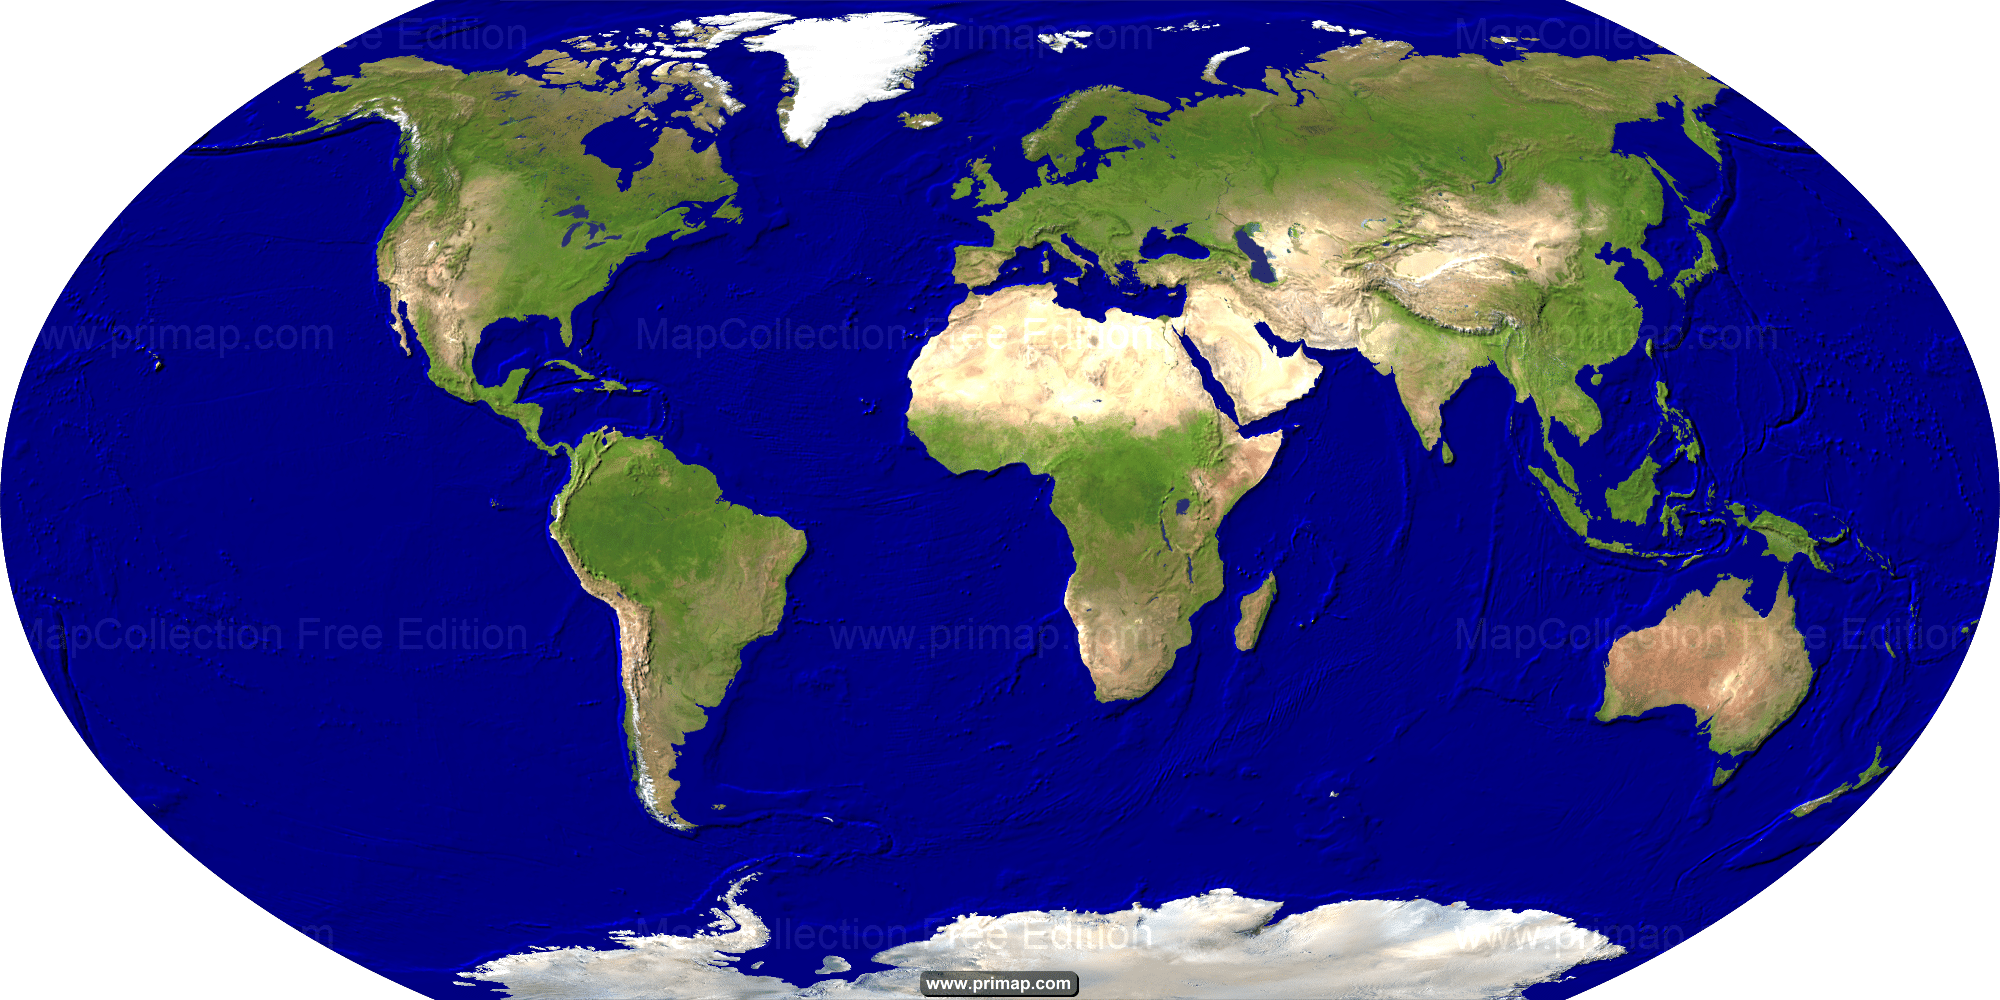 Satellite World Map Hd Images Free HD Images - World map satellite hd